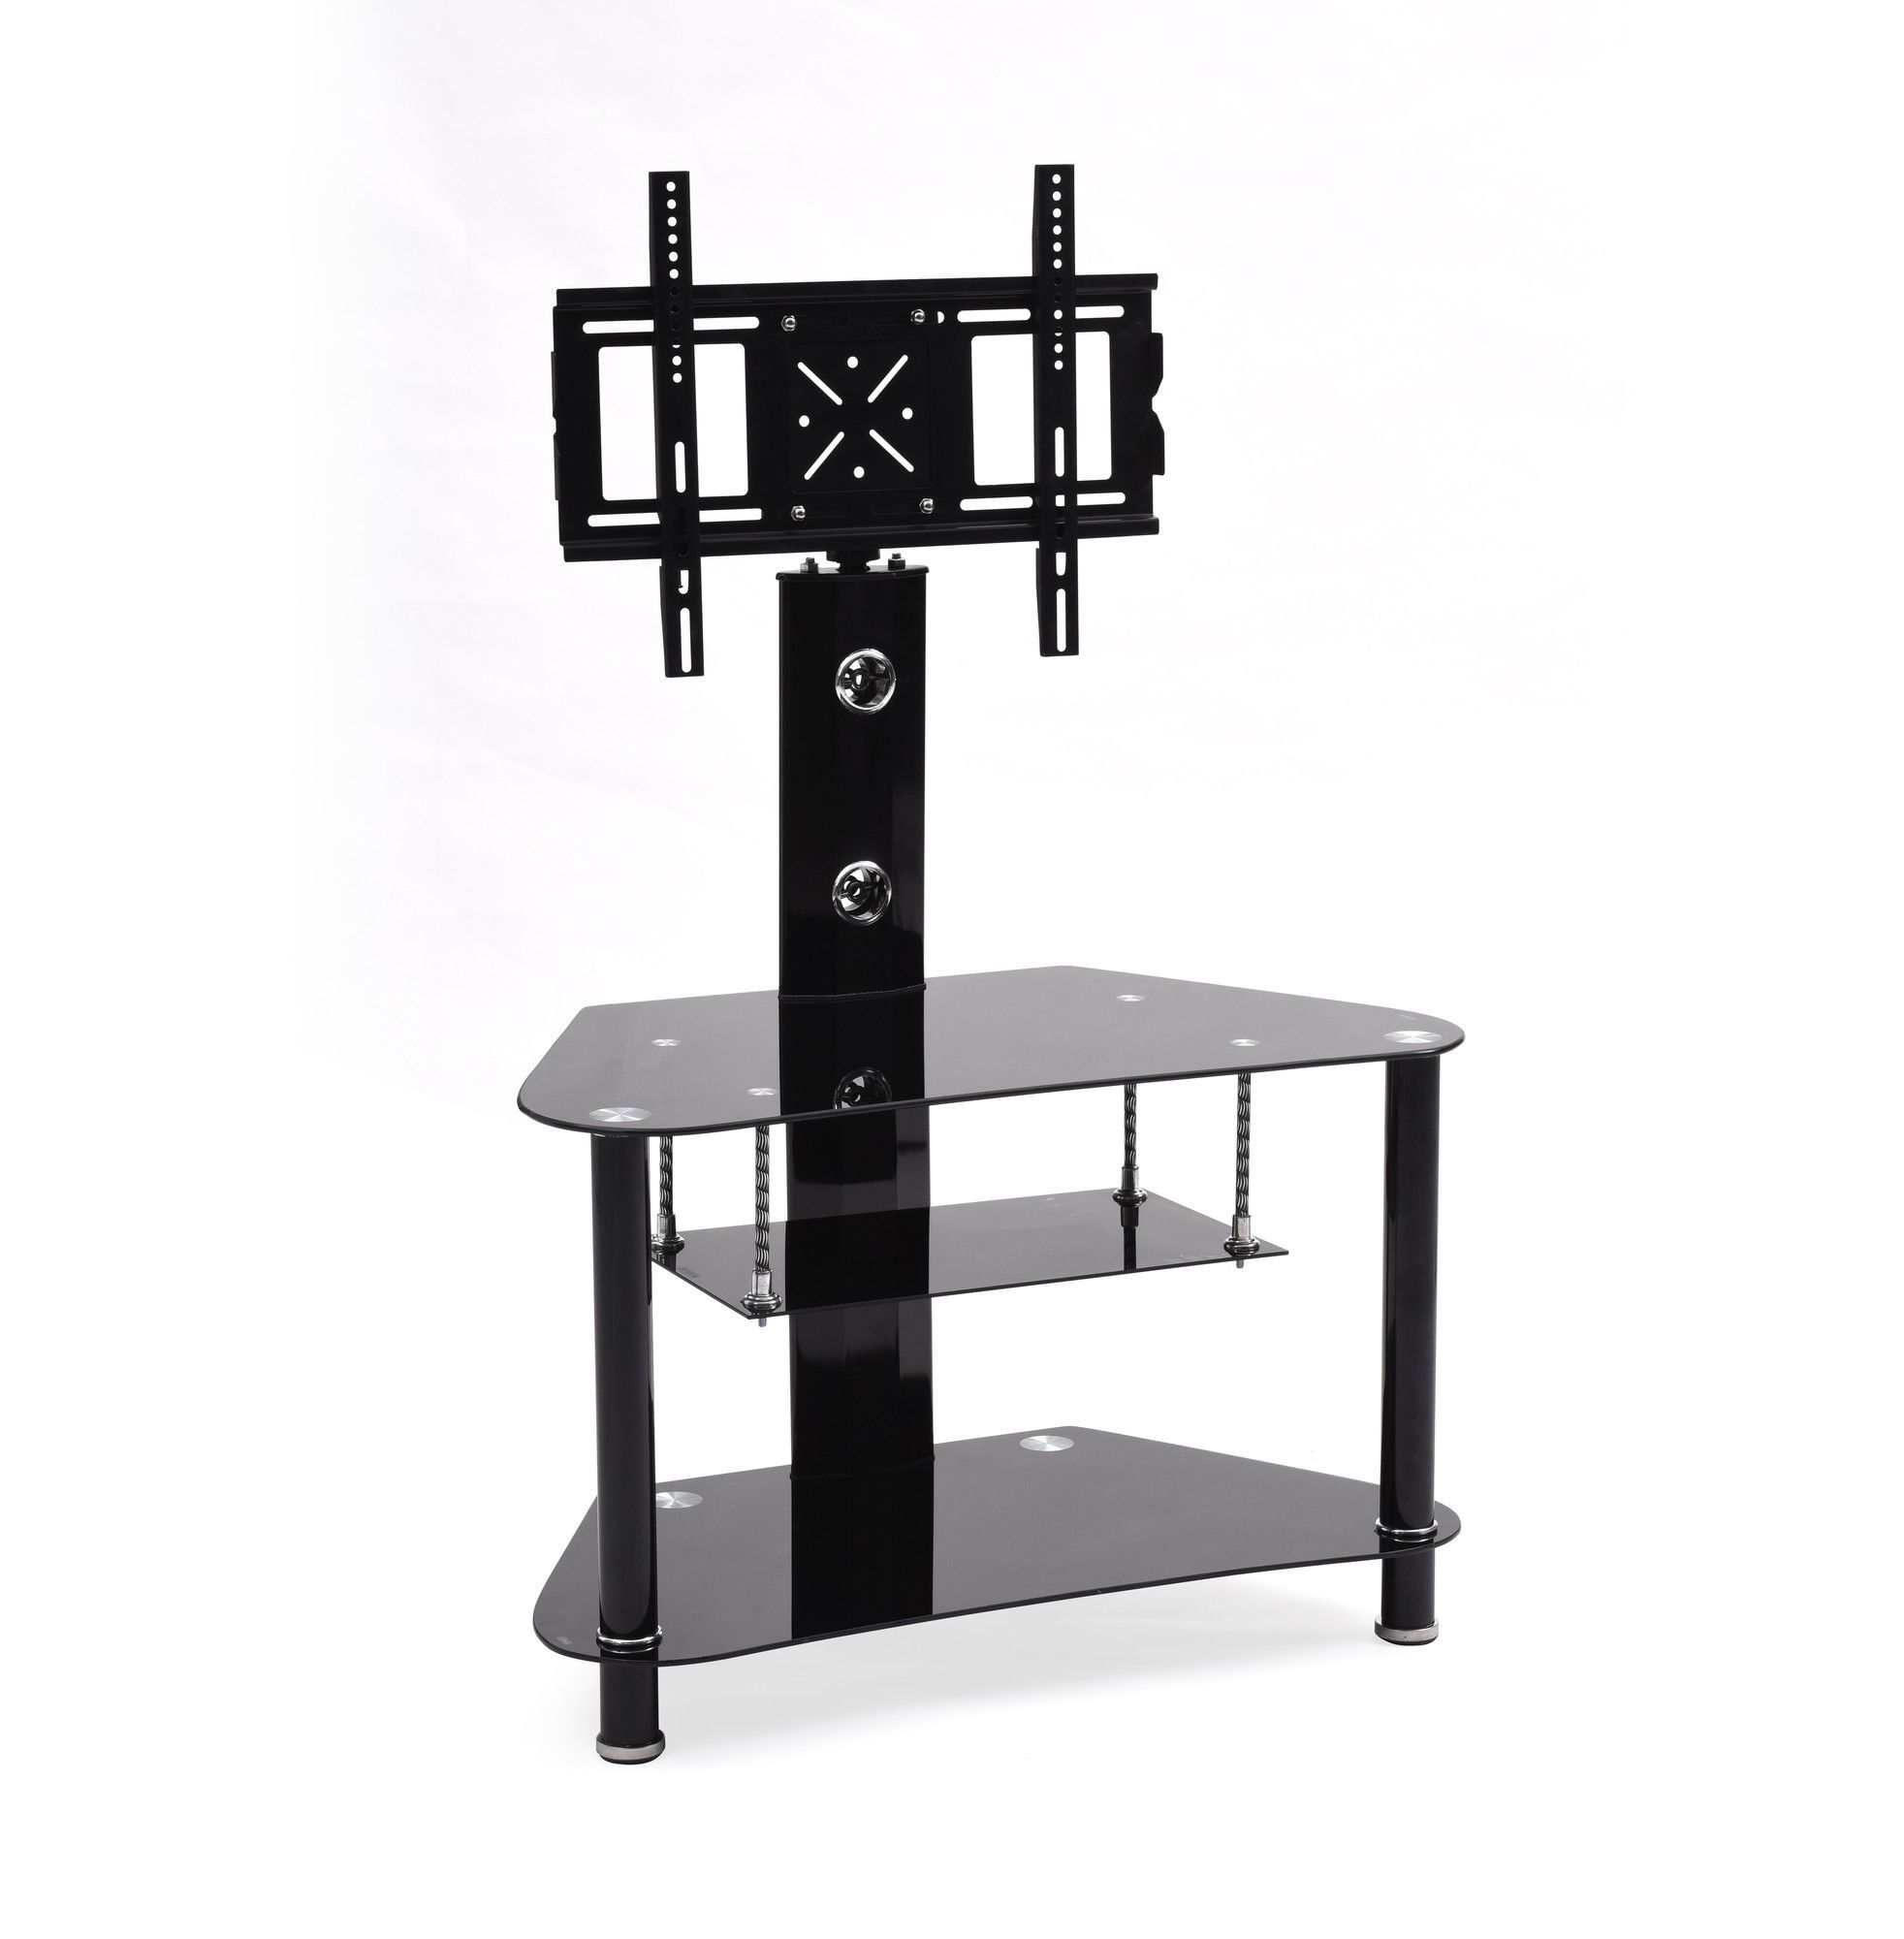 Howard Glass Tv Stand With Mount Swivel Stands Pinterest